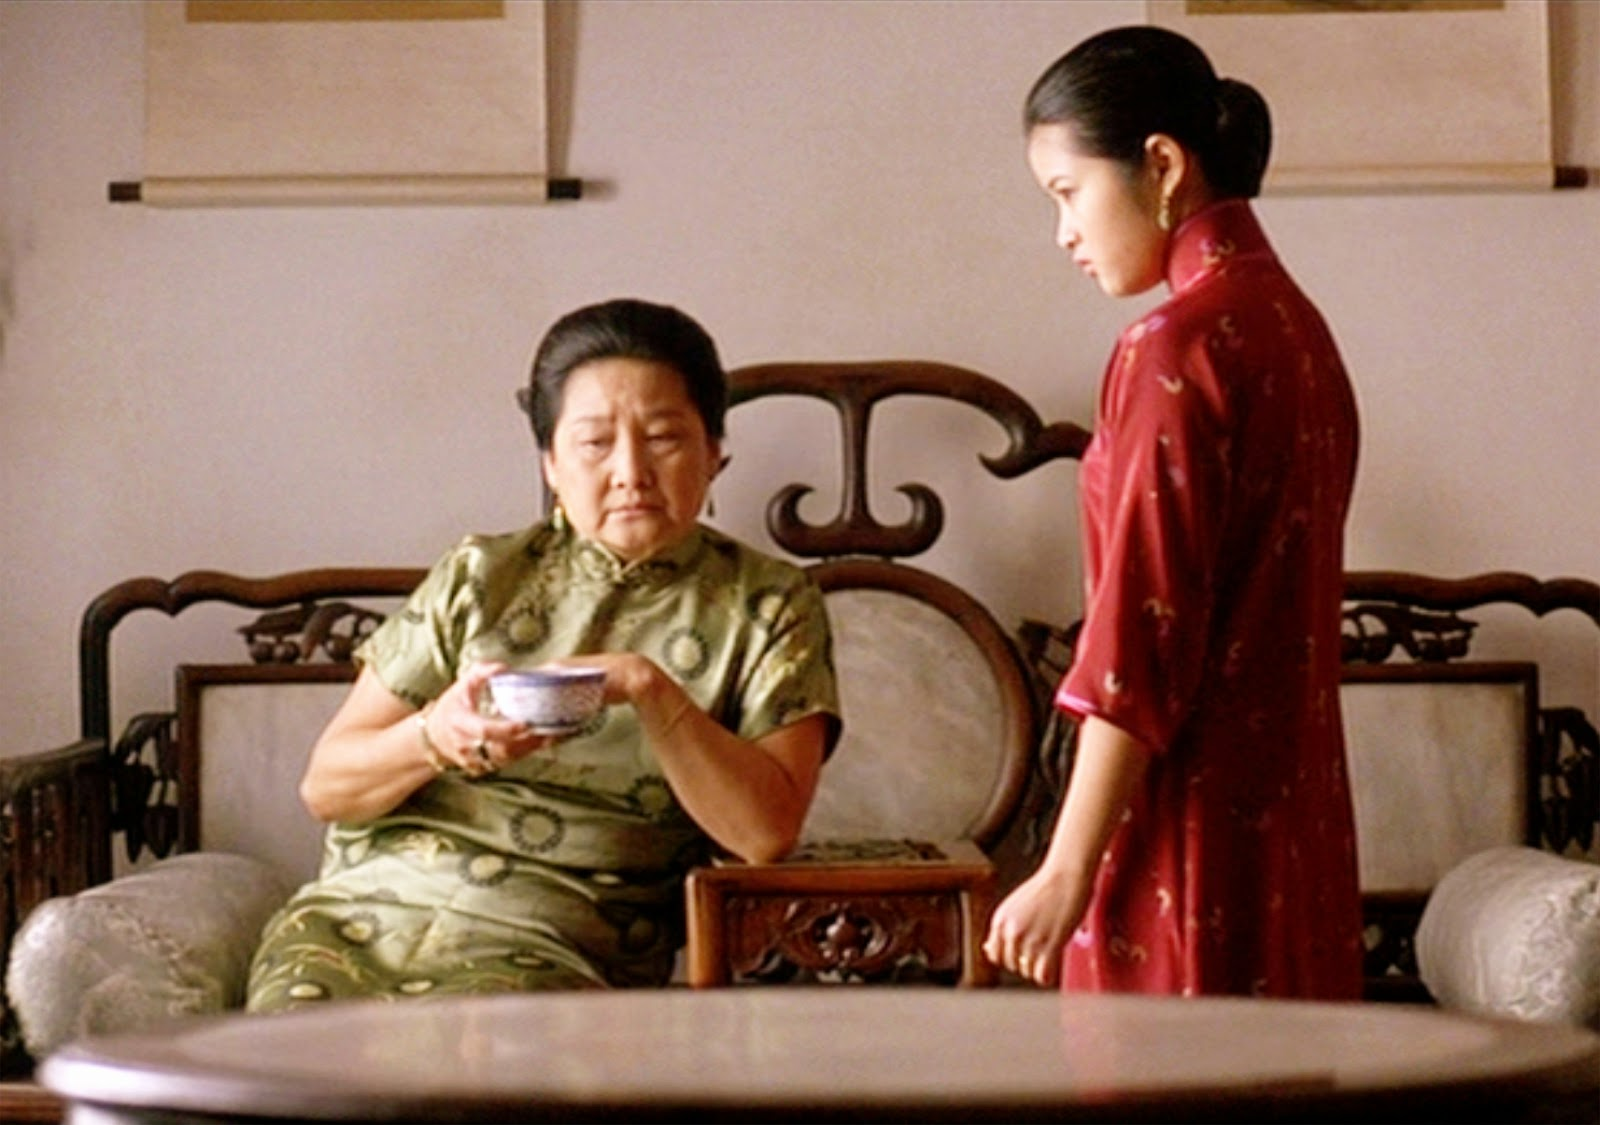 joy luck club the page 4 of 11 the movie the joy luck club based upon the novel by amy tan directed by wayne wang seen here from left guo rong chin as huang taitai